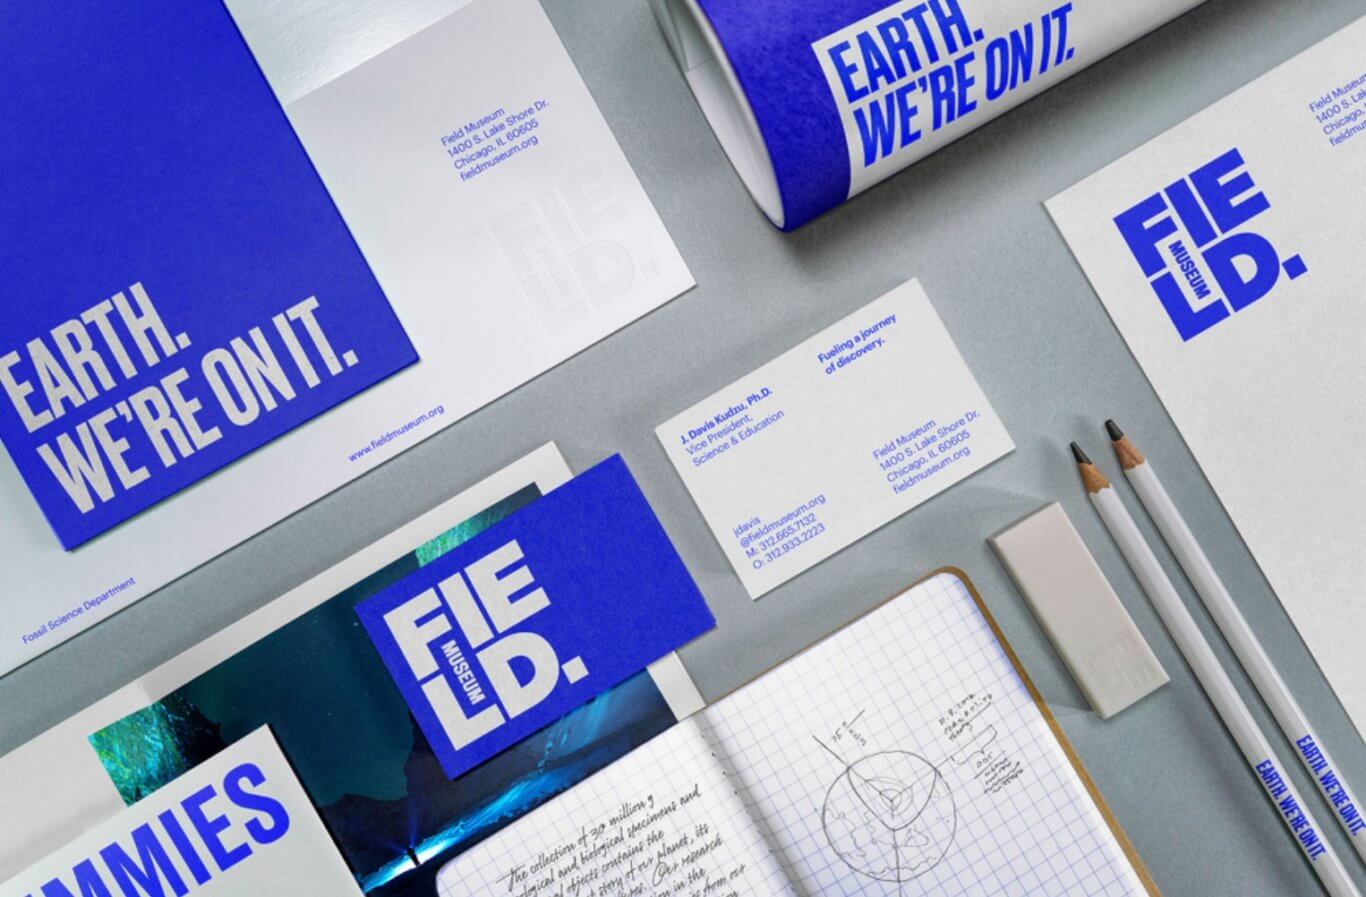 Bright blue and white Field Museum–branded business cards, notecards, pencils, and letterhead are neatly laid out on top of a grey surface.